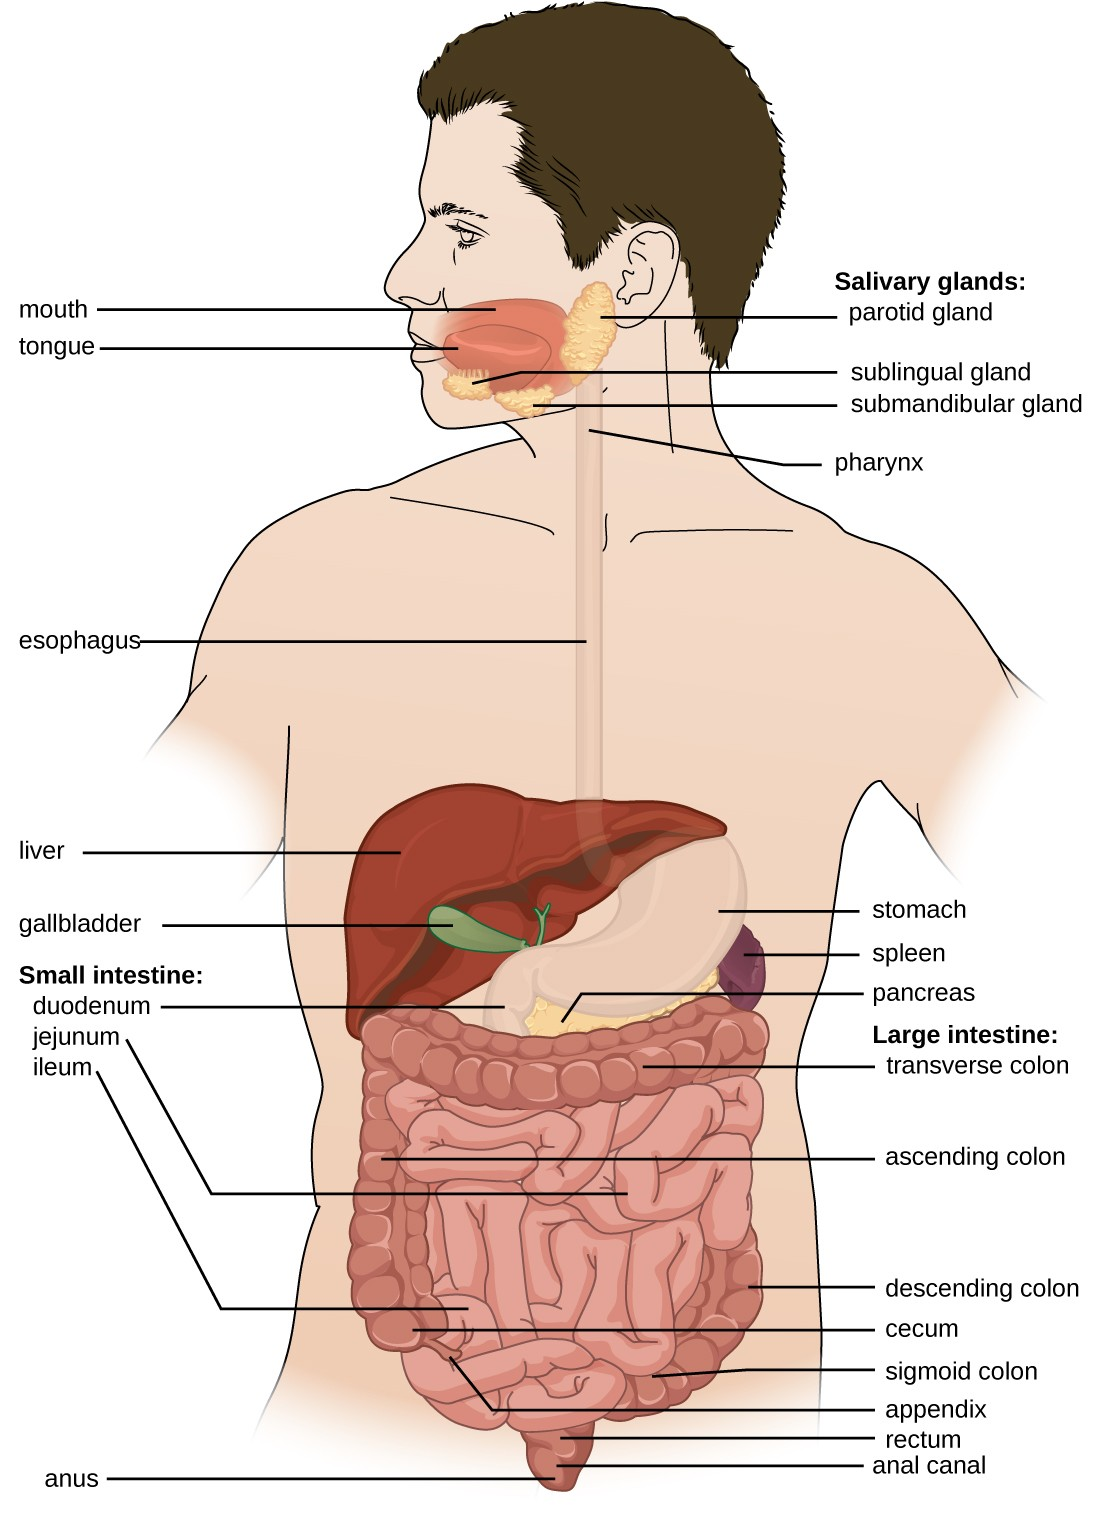 Anatomy And Normal Microbiota Of The Digestive System